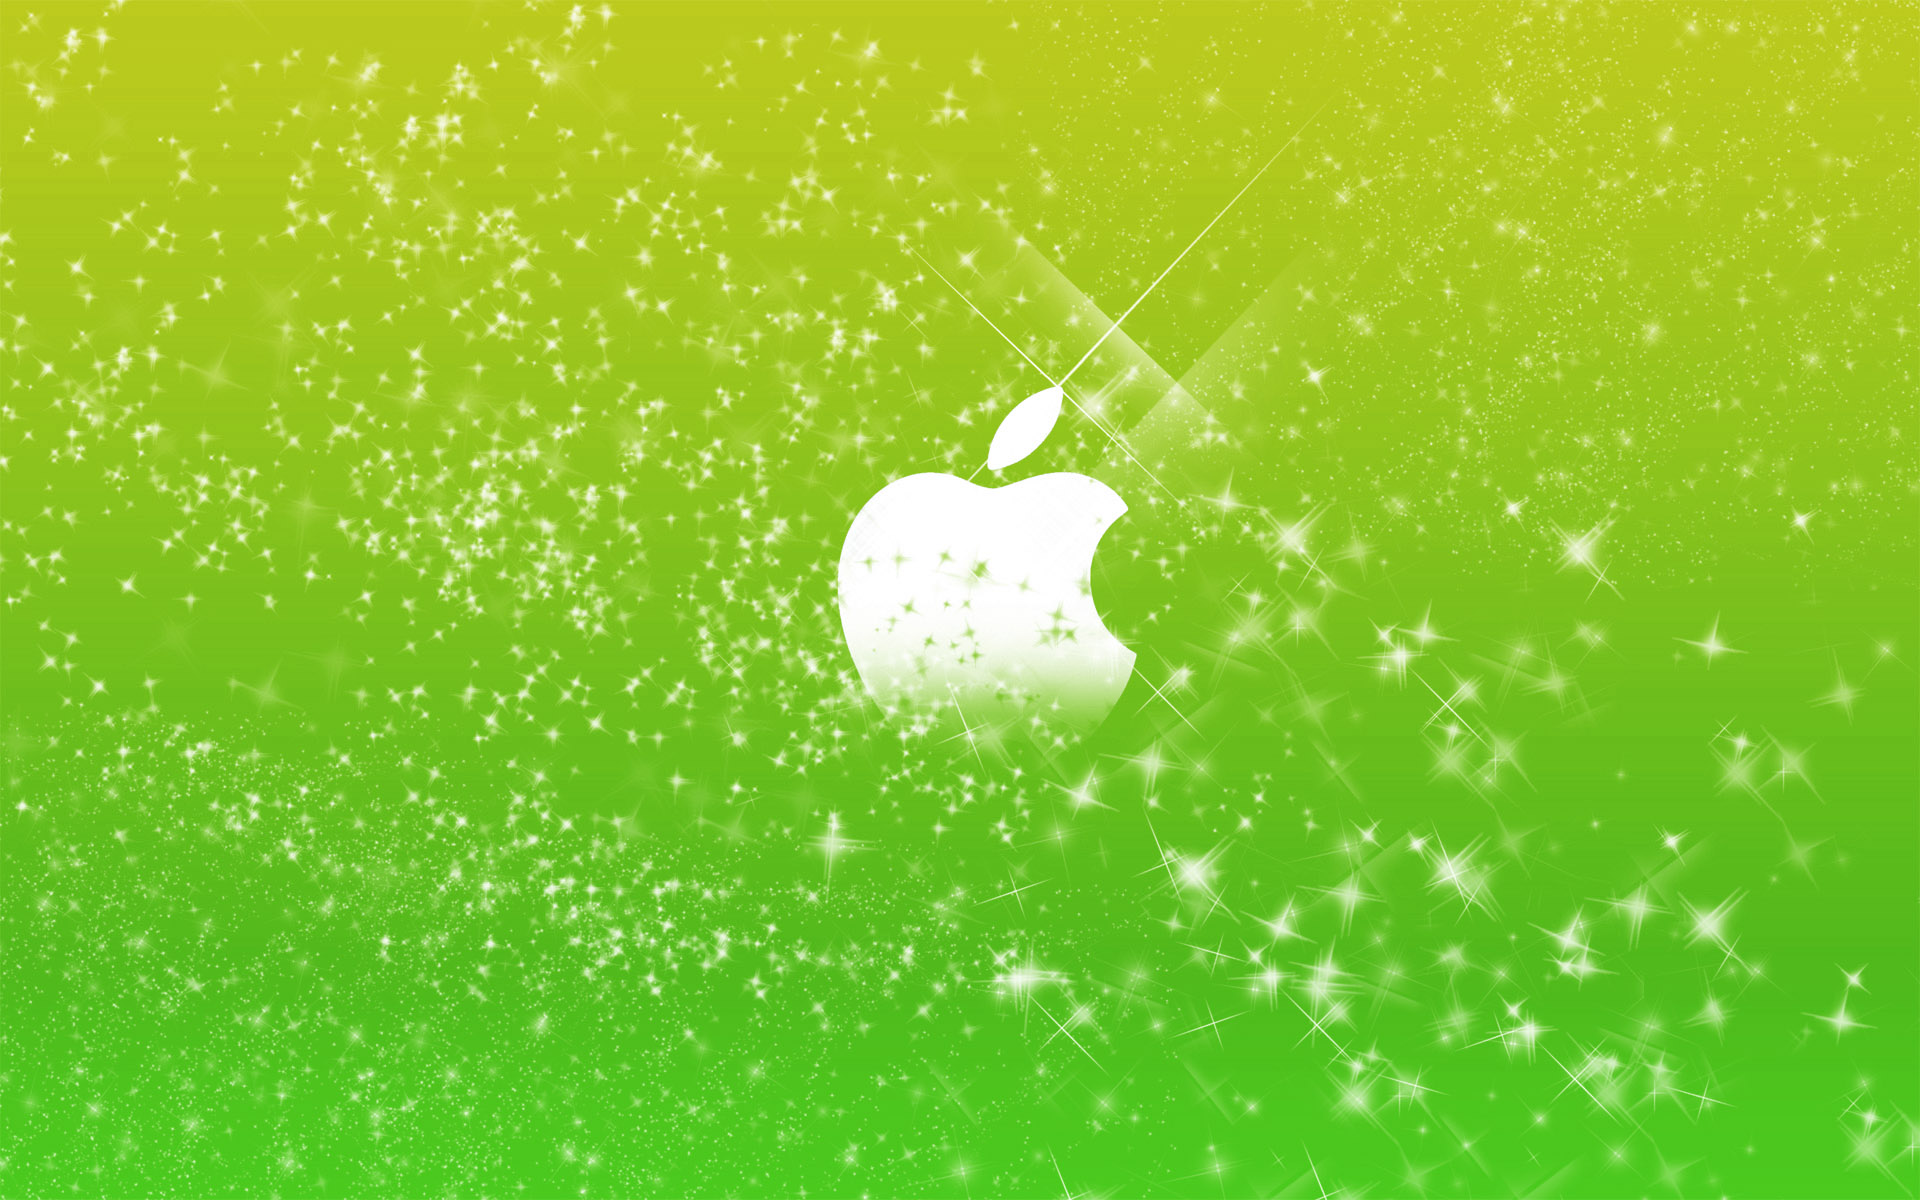 Apple Logo in Green Glitters Wallpapers HD Wallpapers 1920x1200